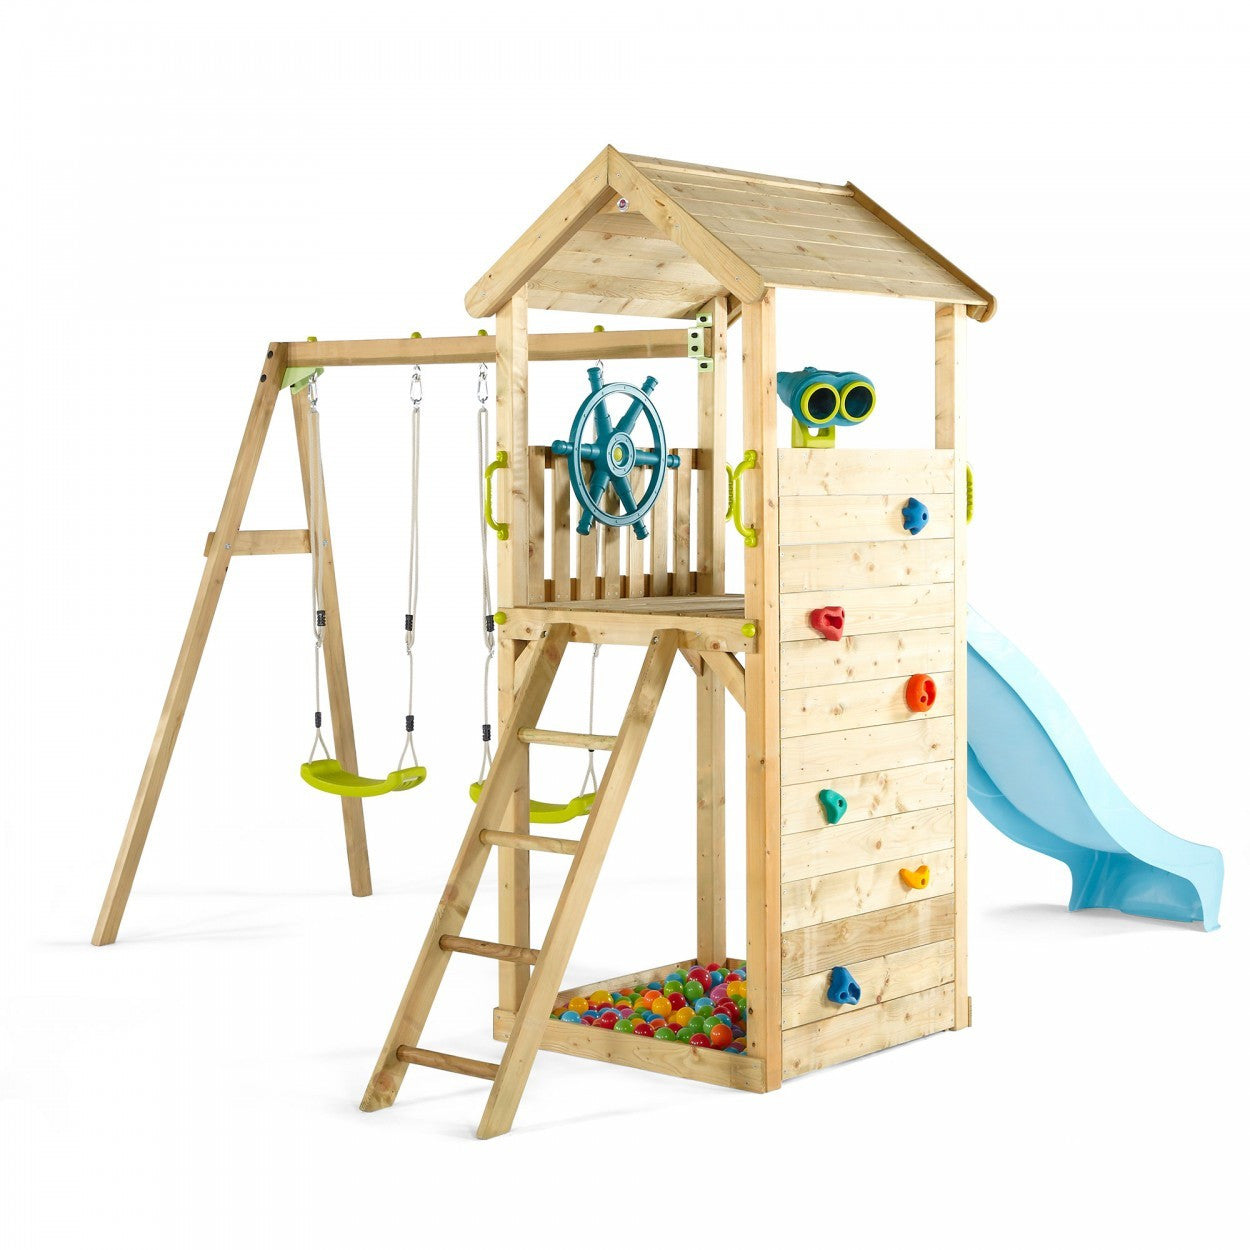 Plum Lookout Tower Wooden Play Centre With Swings Binoculars And Ball Pit